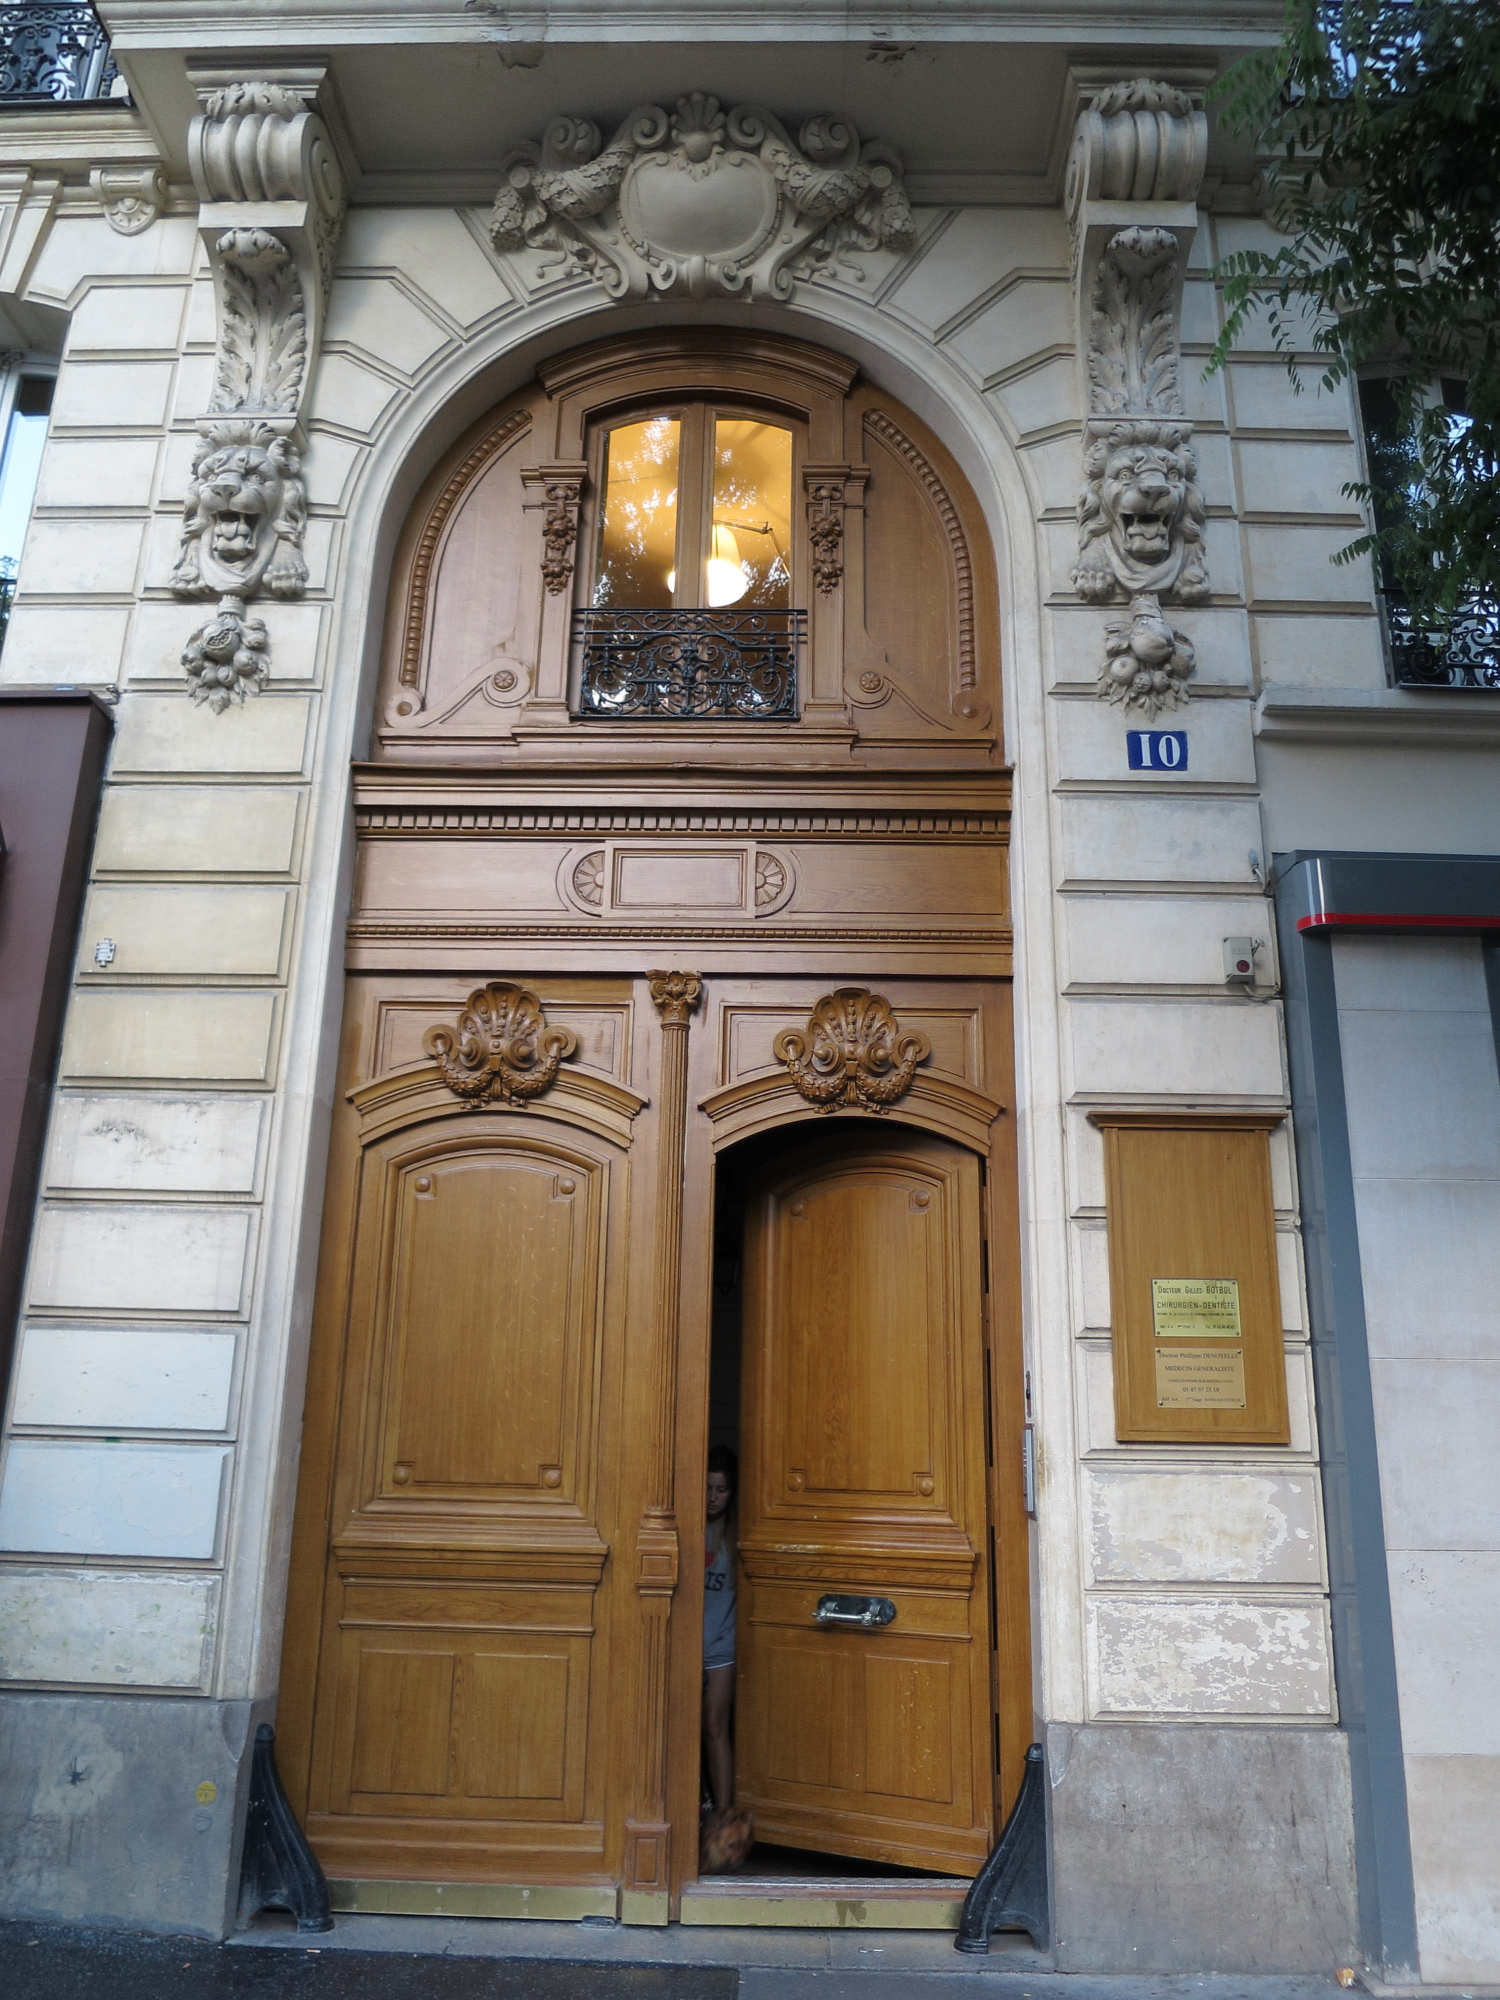 Doorway at Jordain, rue de Belleville